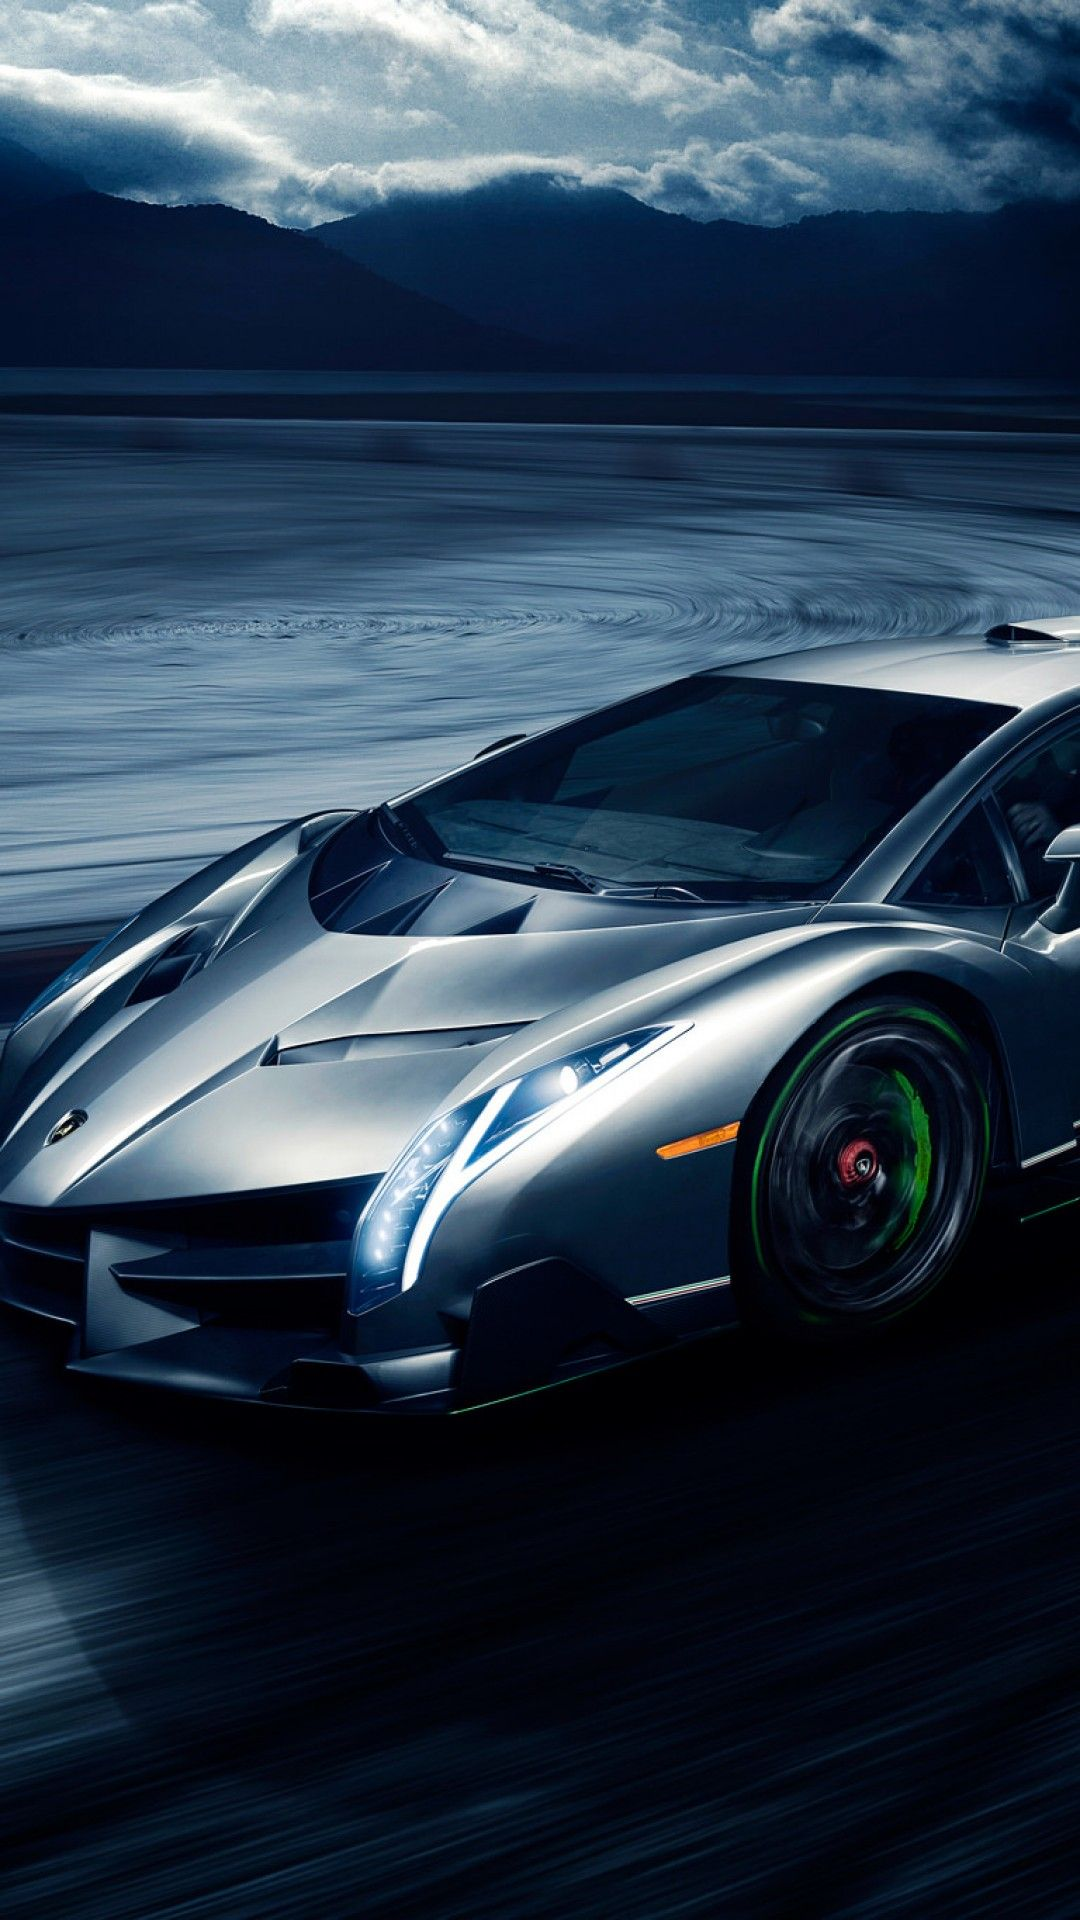 Supercar Background Image In 2020 Super Cars Background Images Image